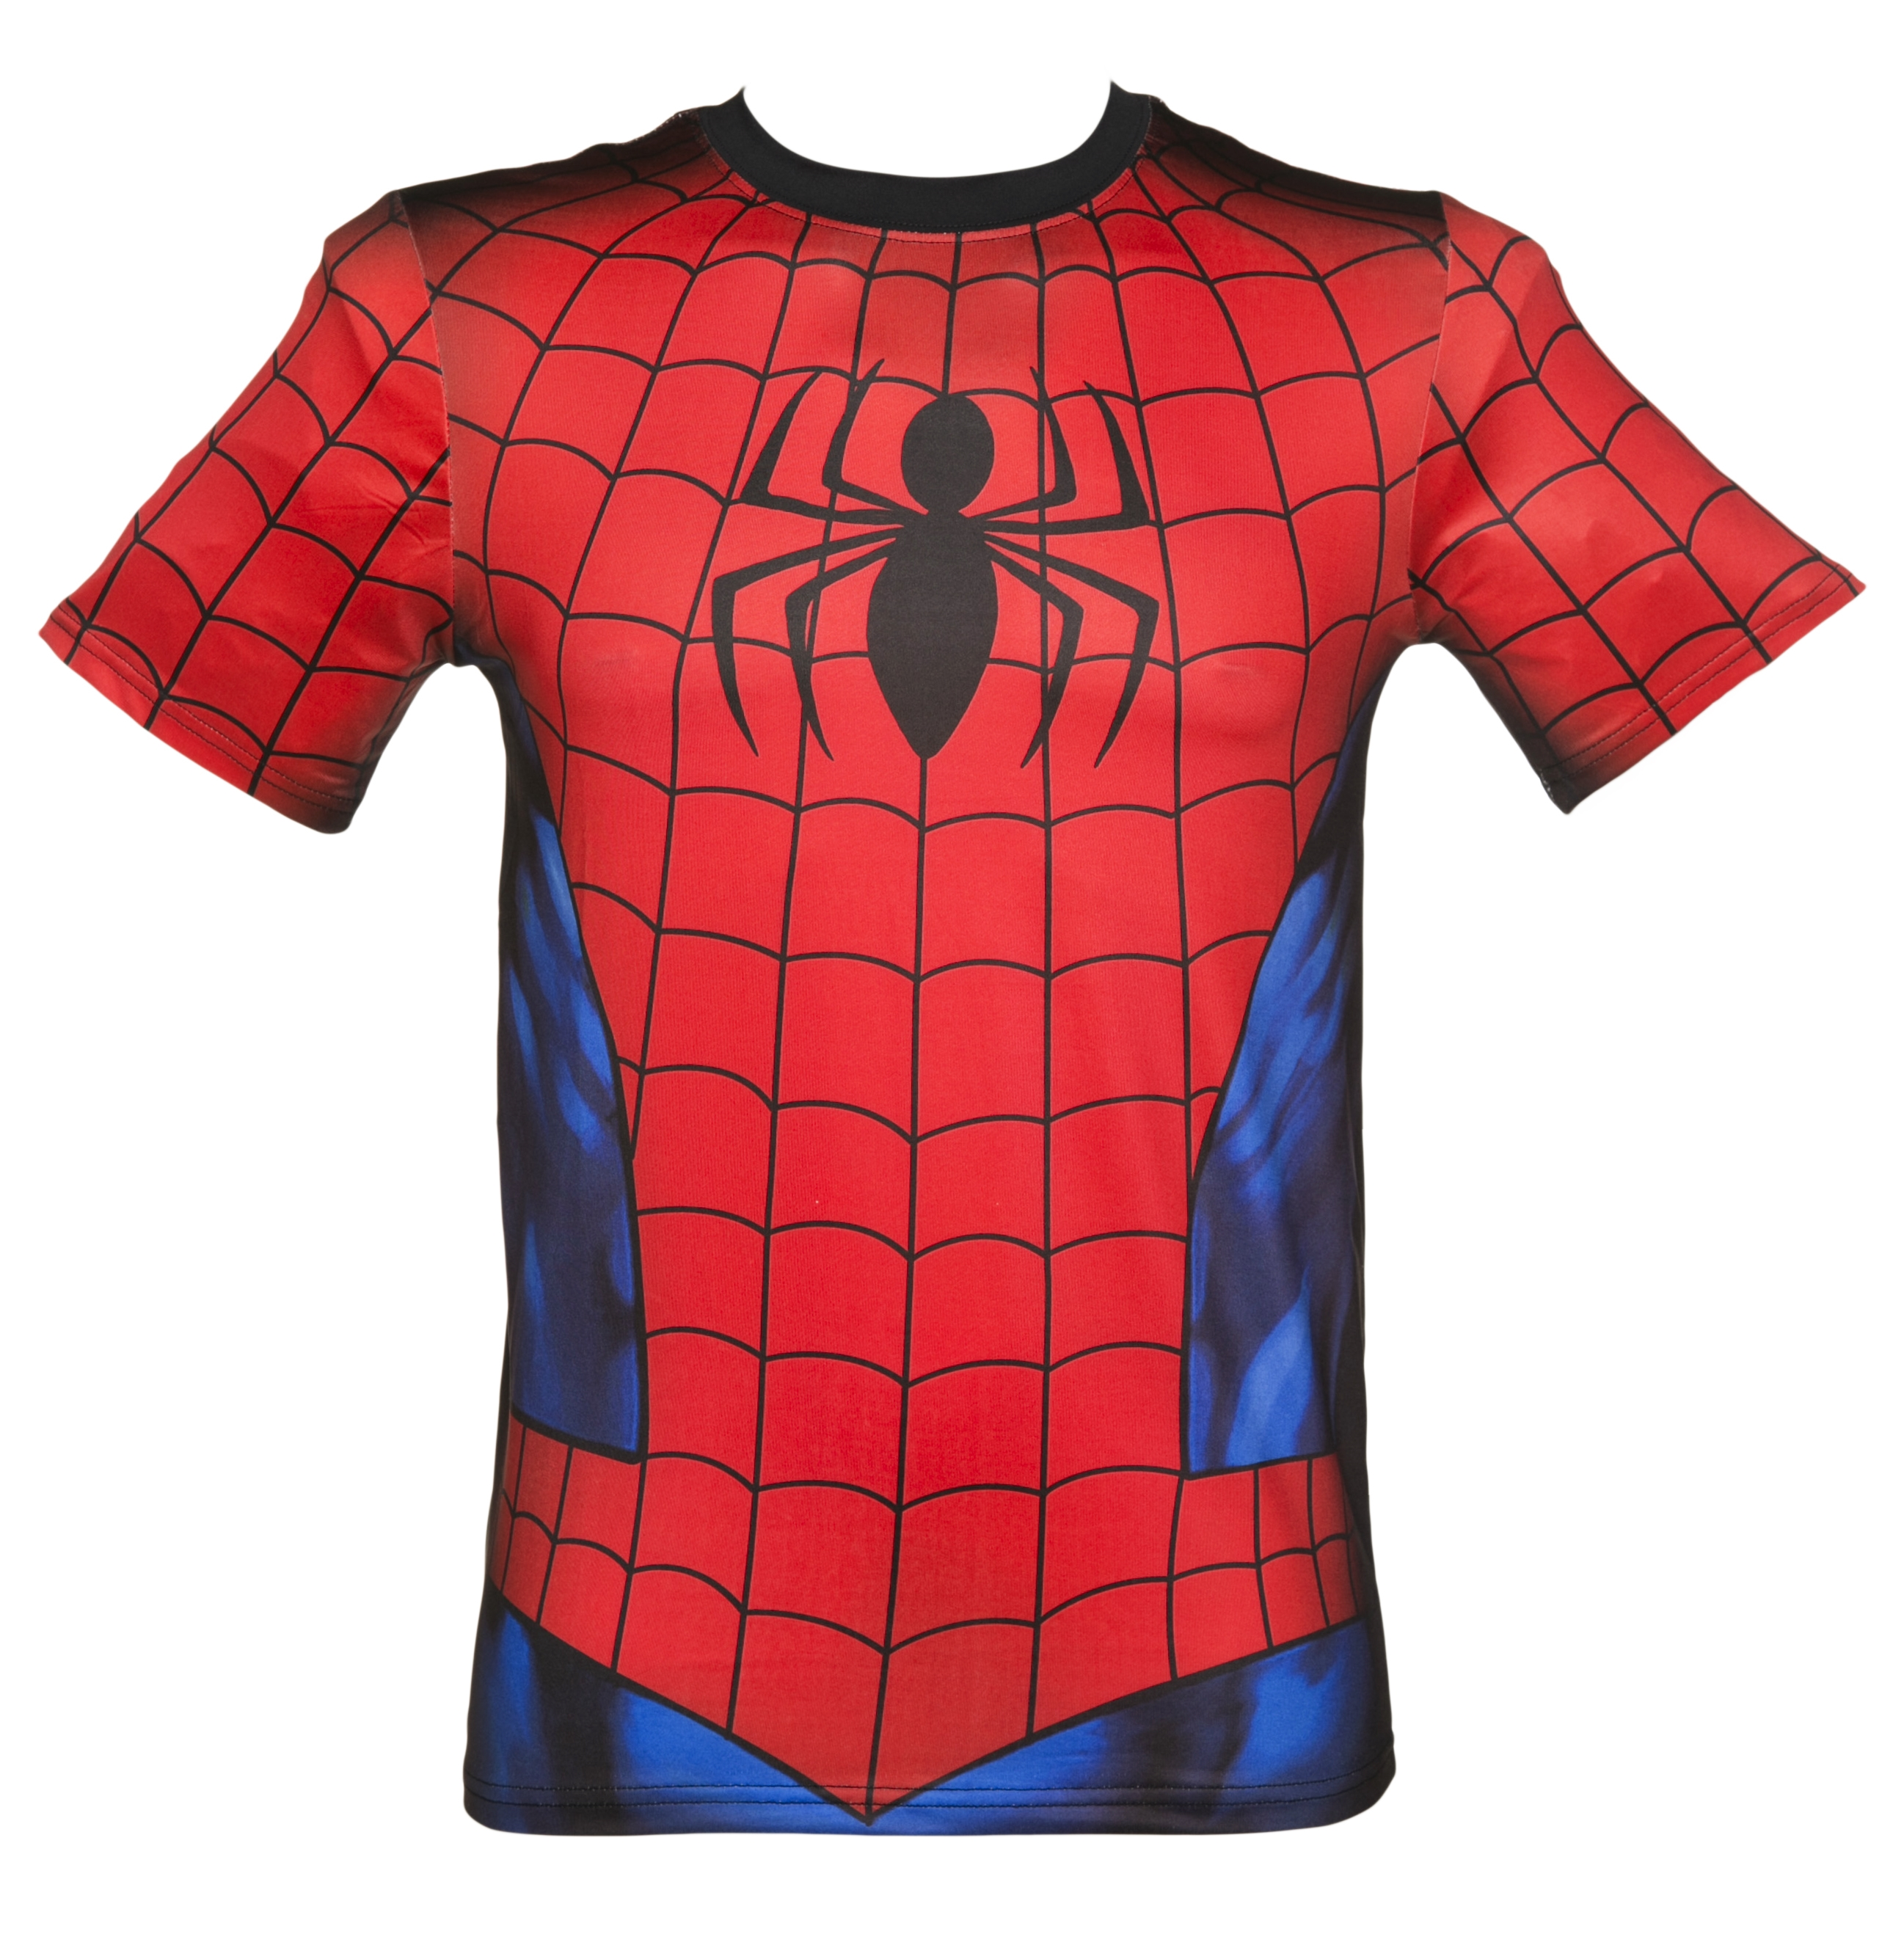 mens marvel spiderman costume t shirt. Black Bedroom Furniture Sets. Home Design Ideas